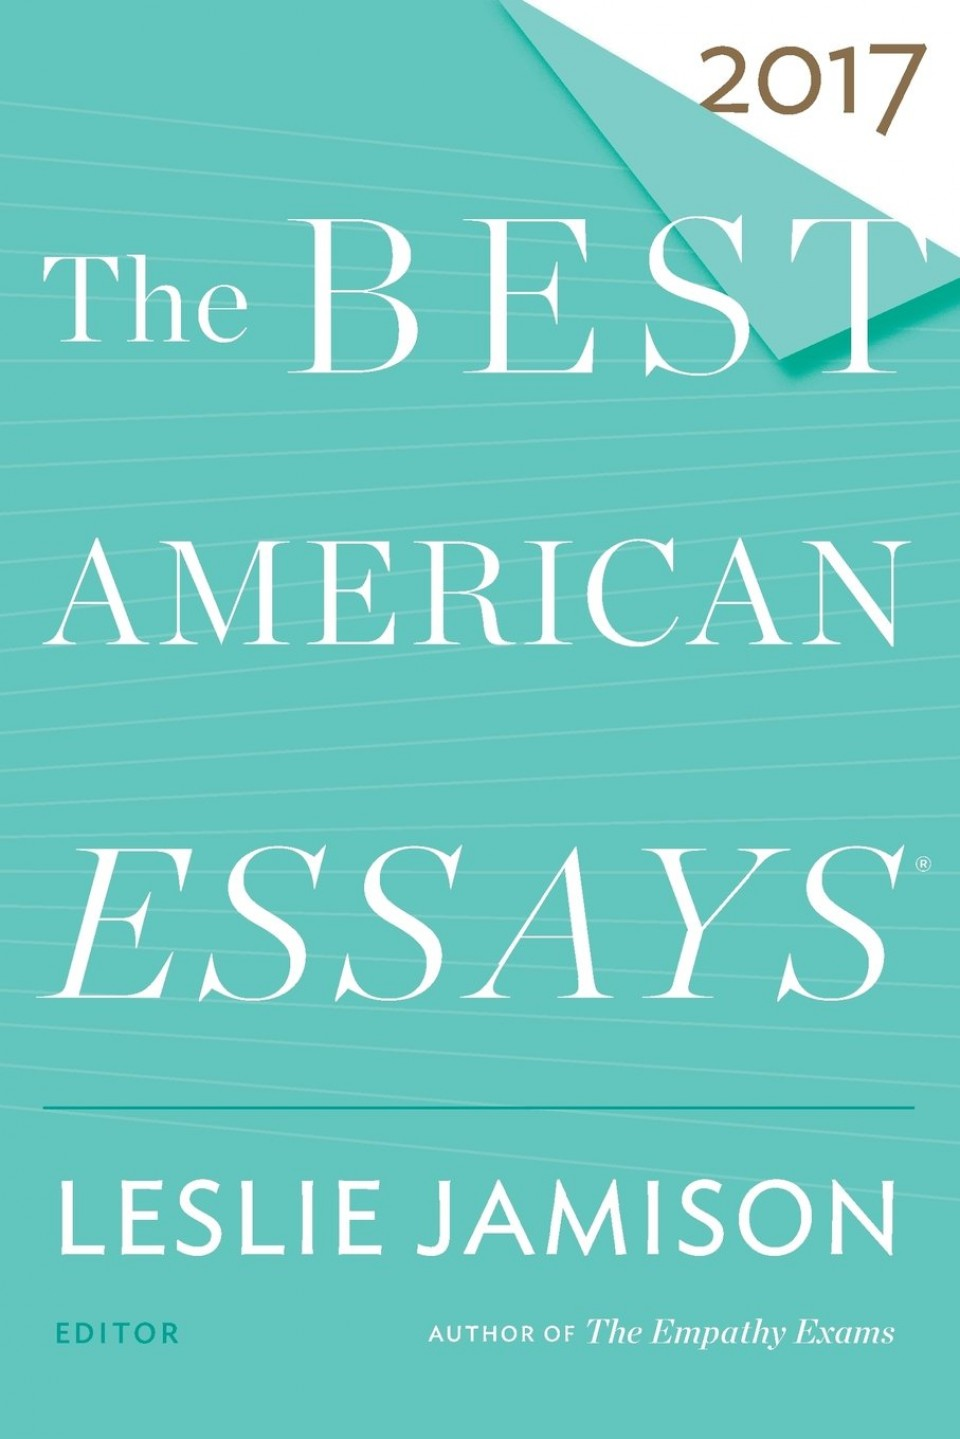 001 61tzl Nruvl Essay Example The Best American Wonderful Essays 2013 Pdf Download Of Century Sparknotes 2017 960